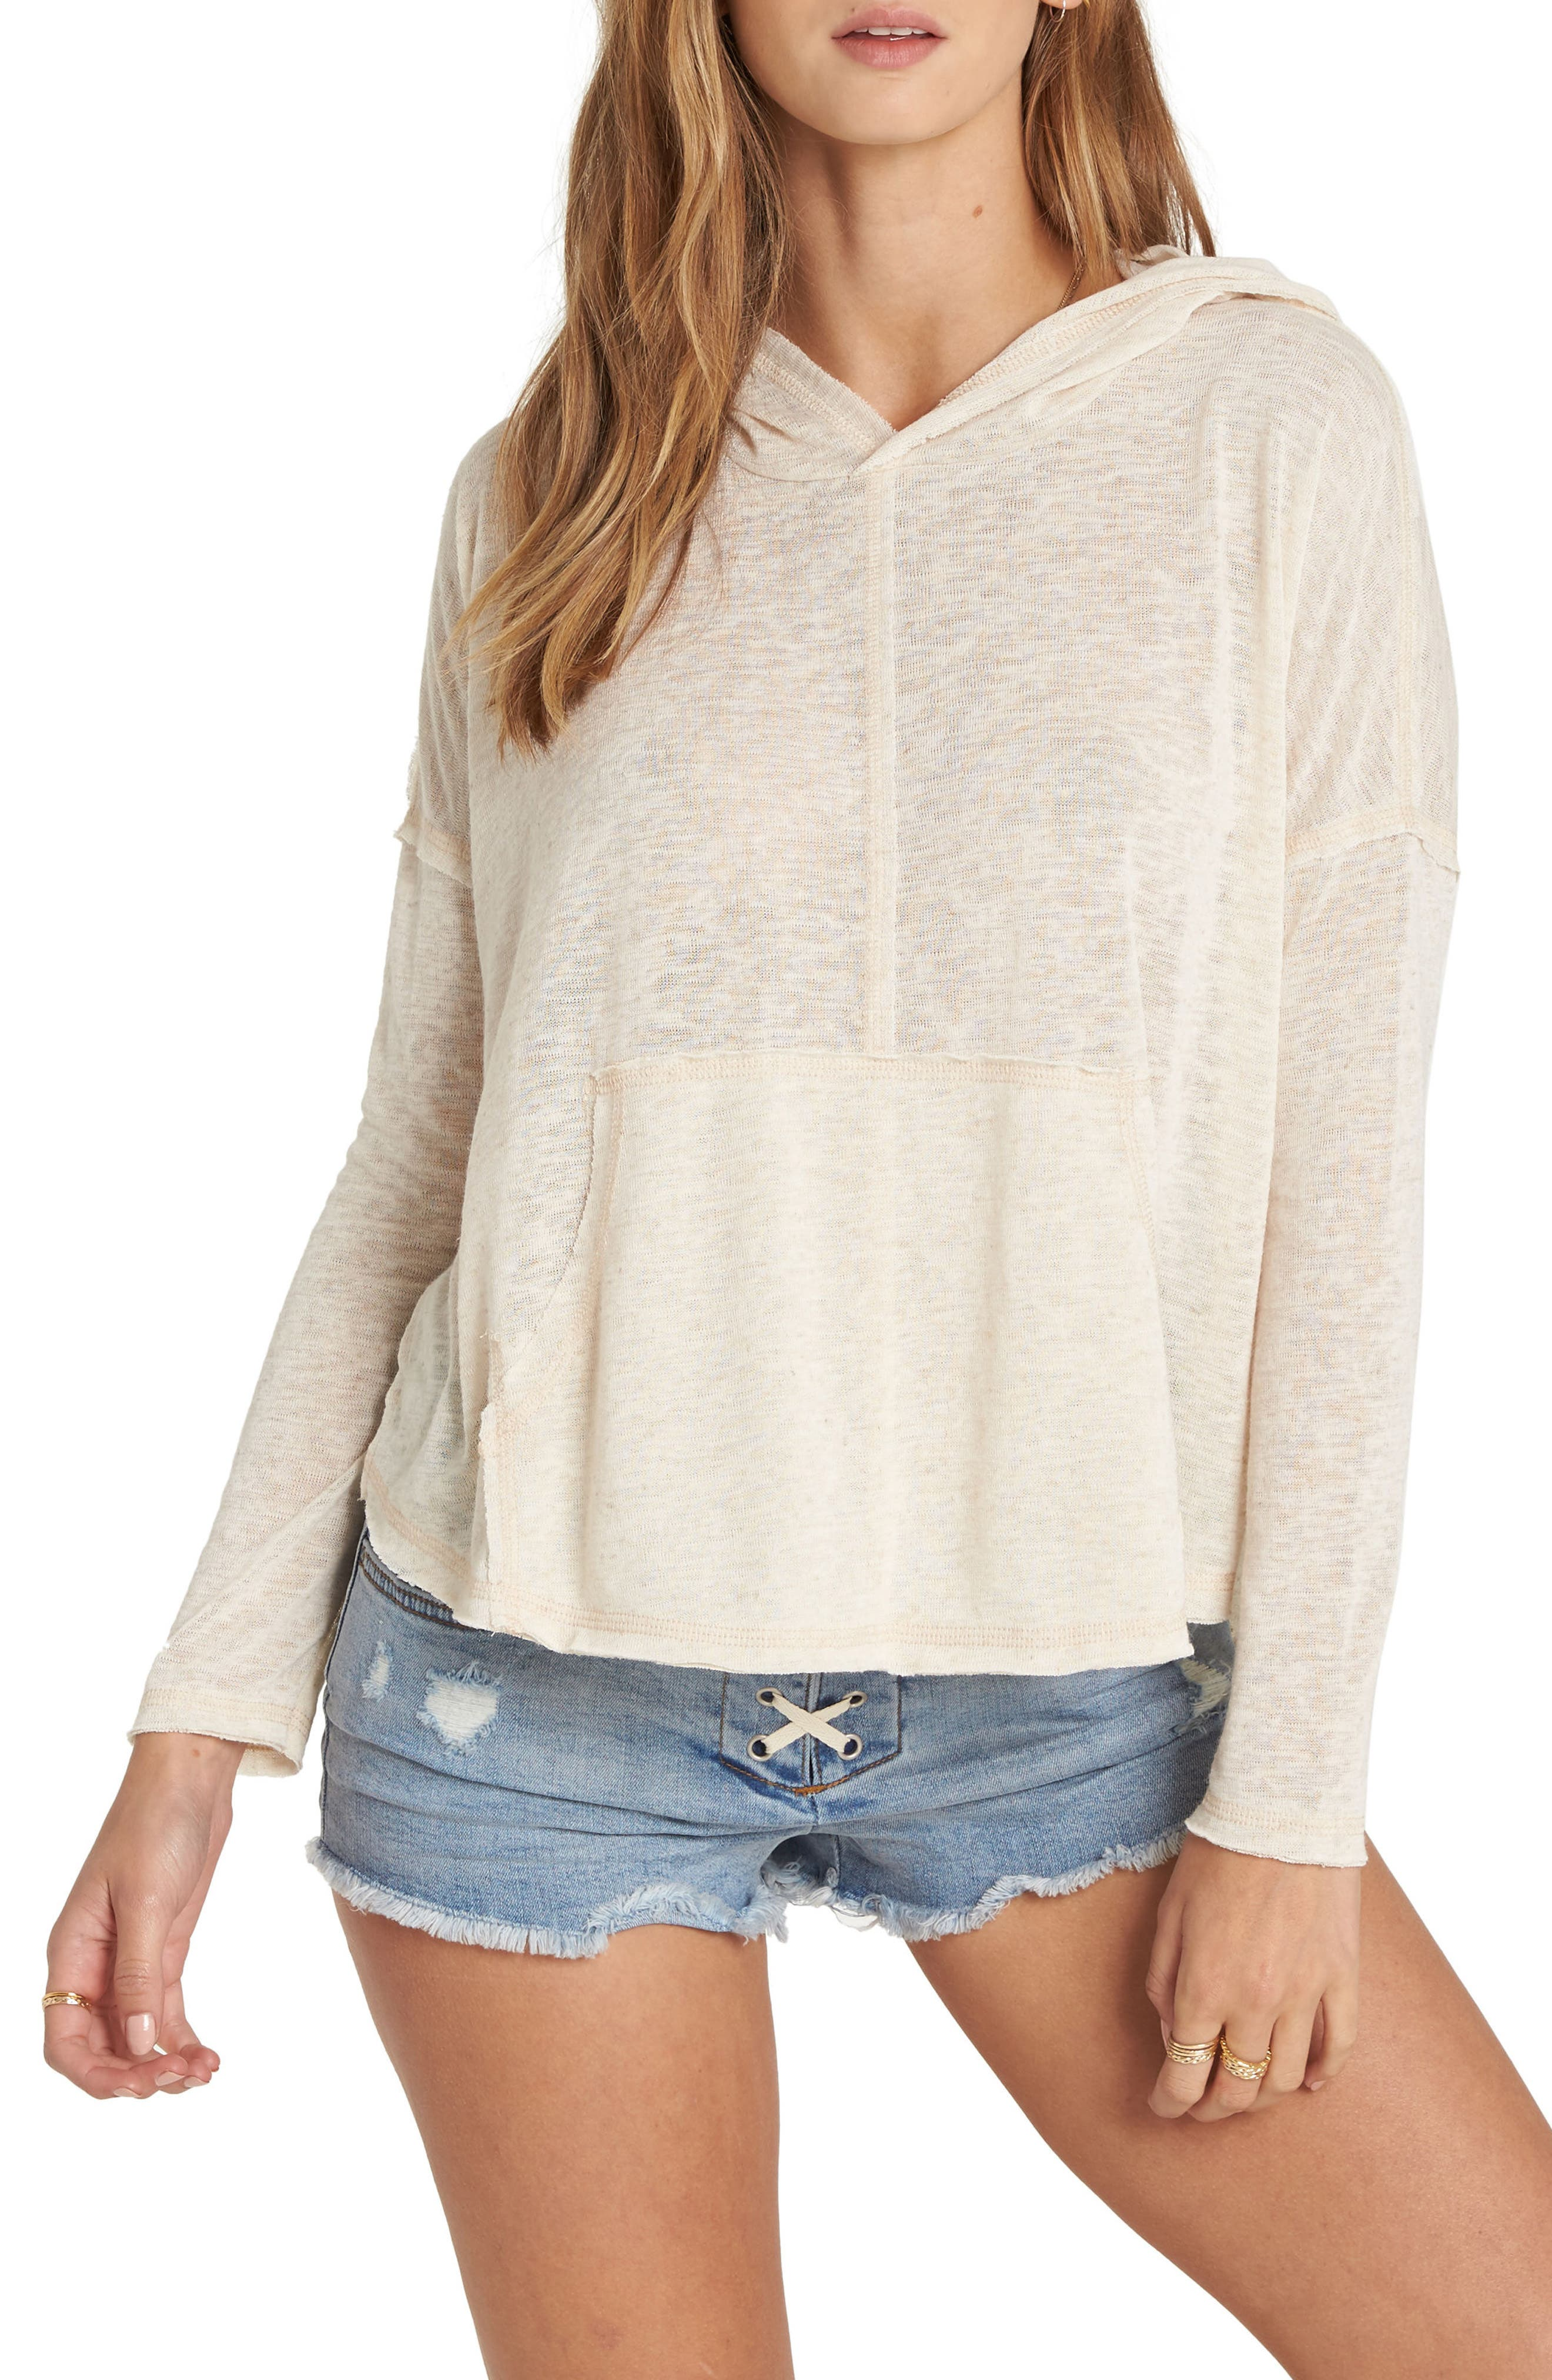 These Days Hooded Swing Top,                         Main,                         color, 190